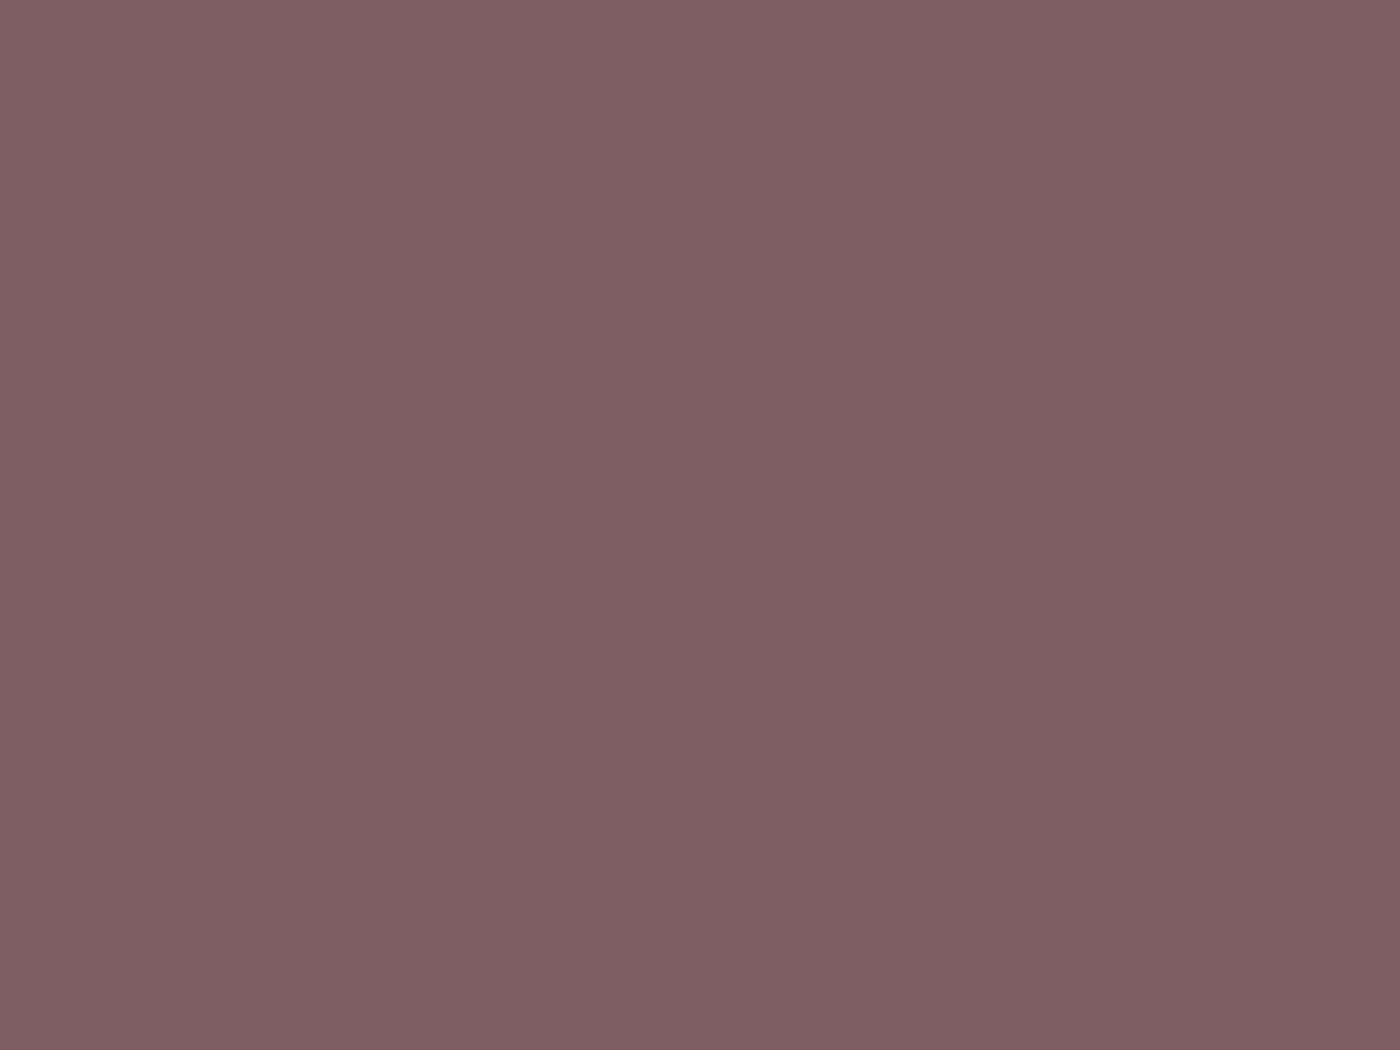 1400x1050 Deep Taupe Solid Color Background